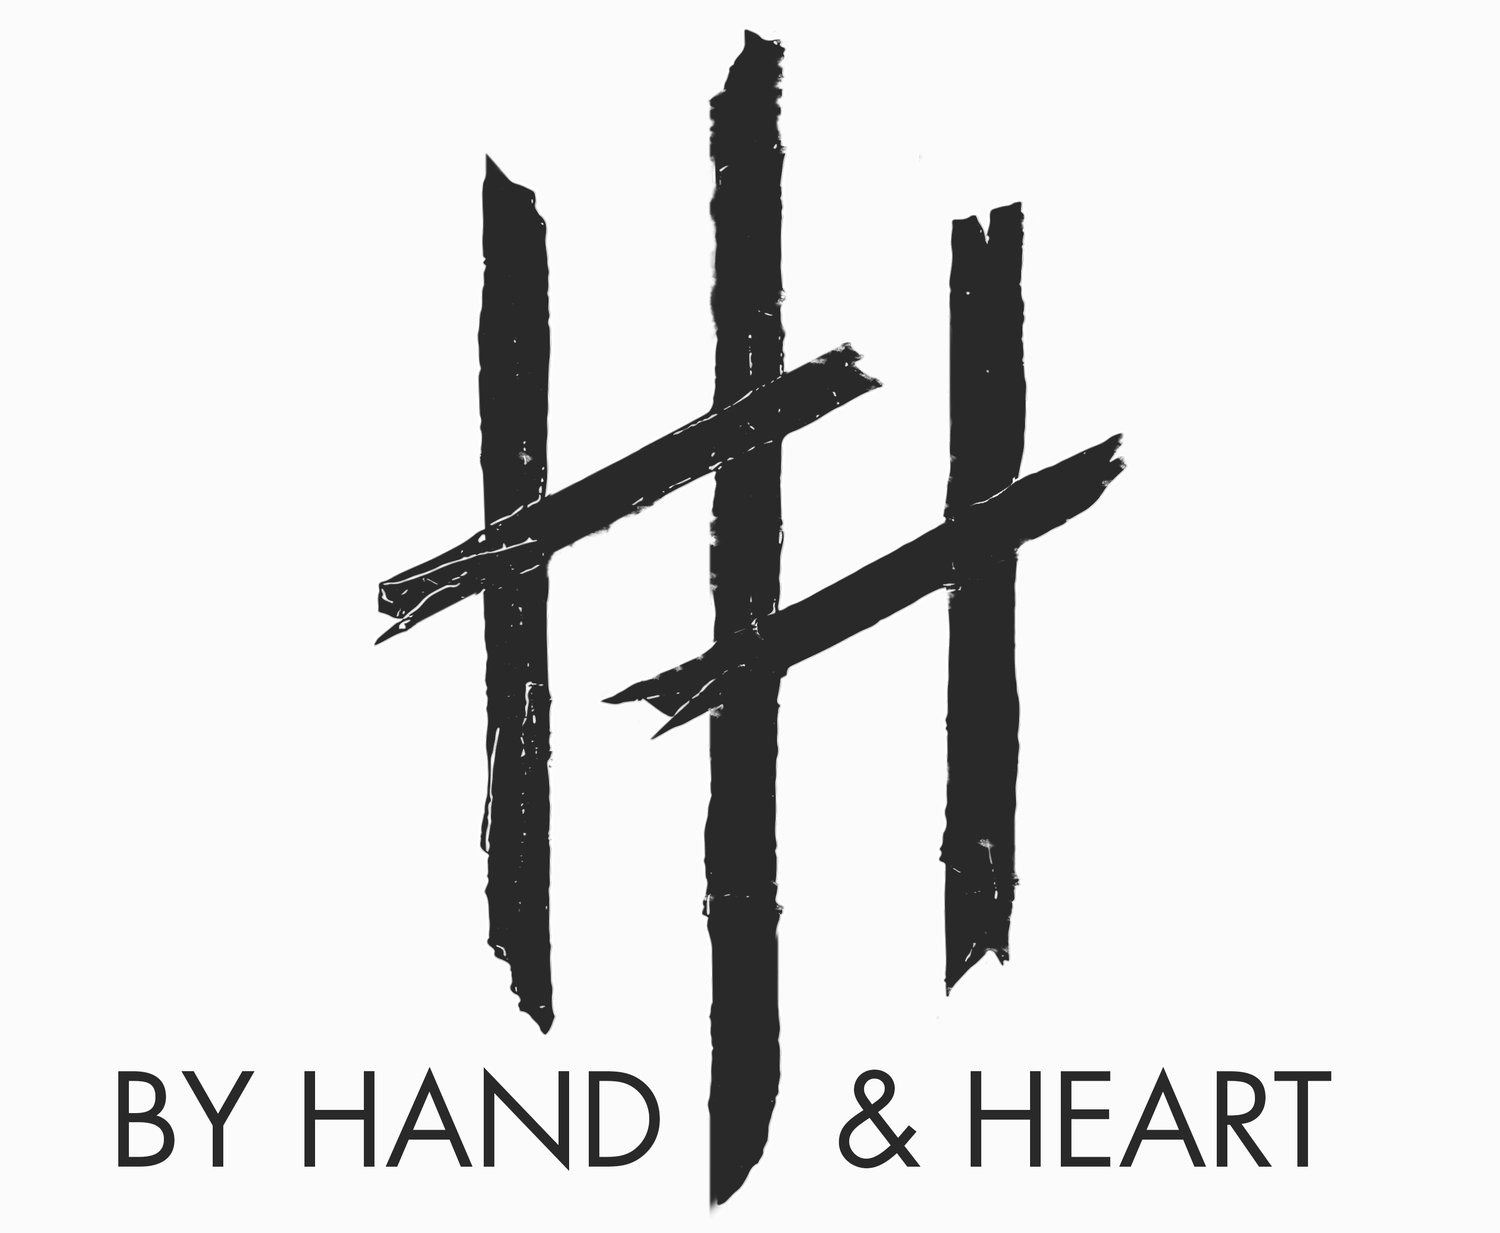 By Hand & Heart